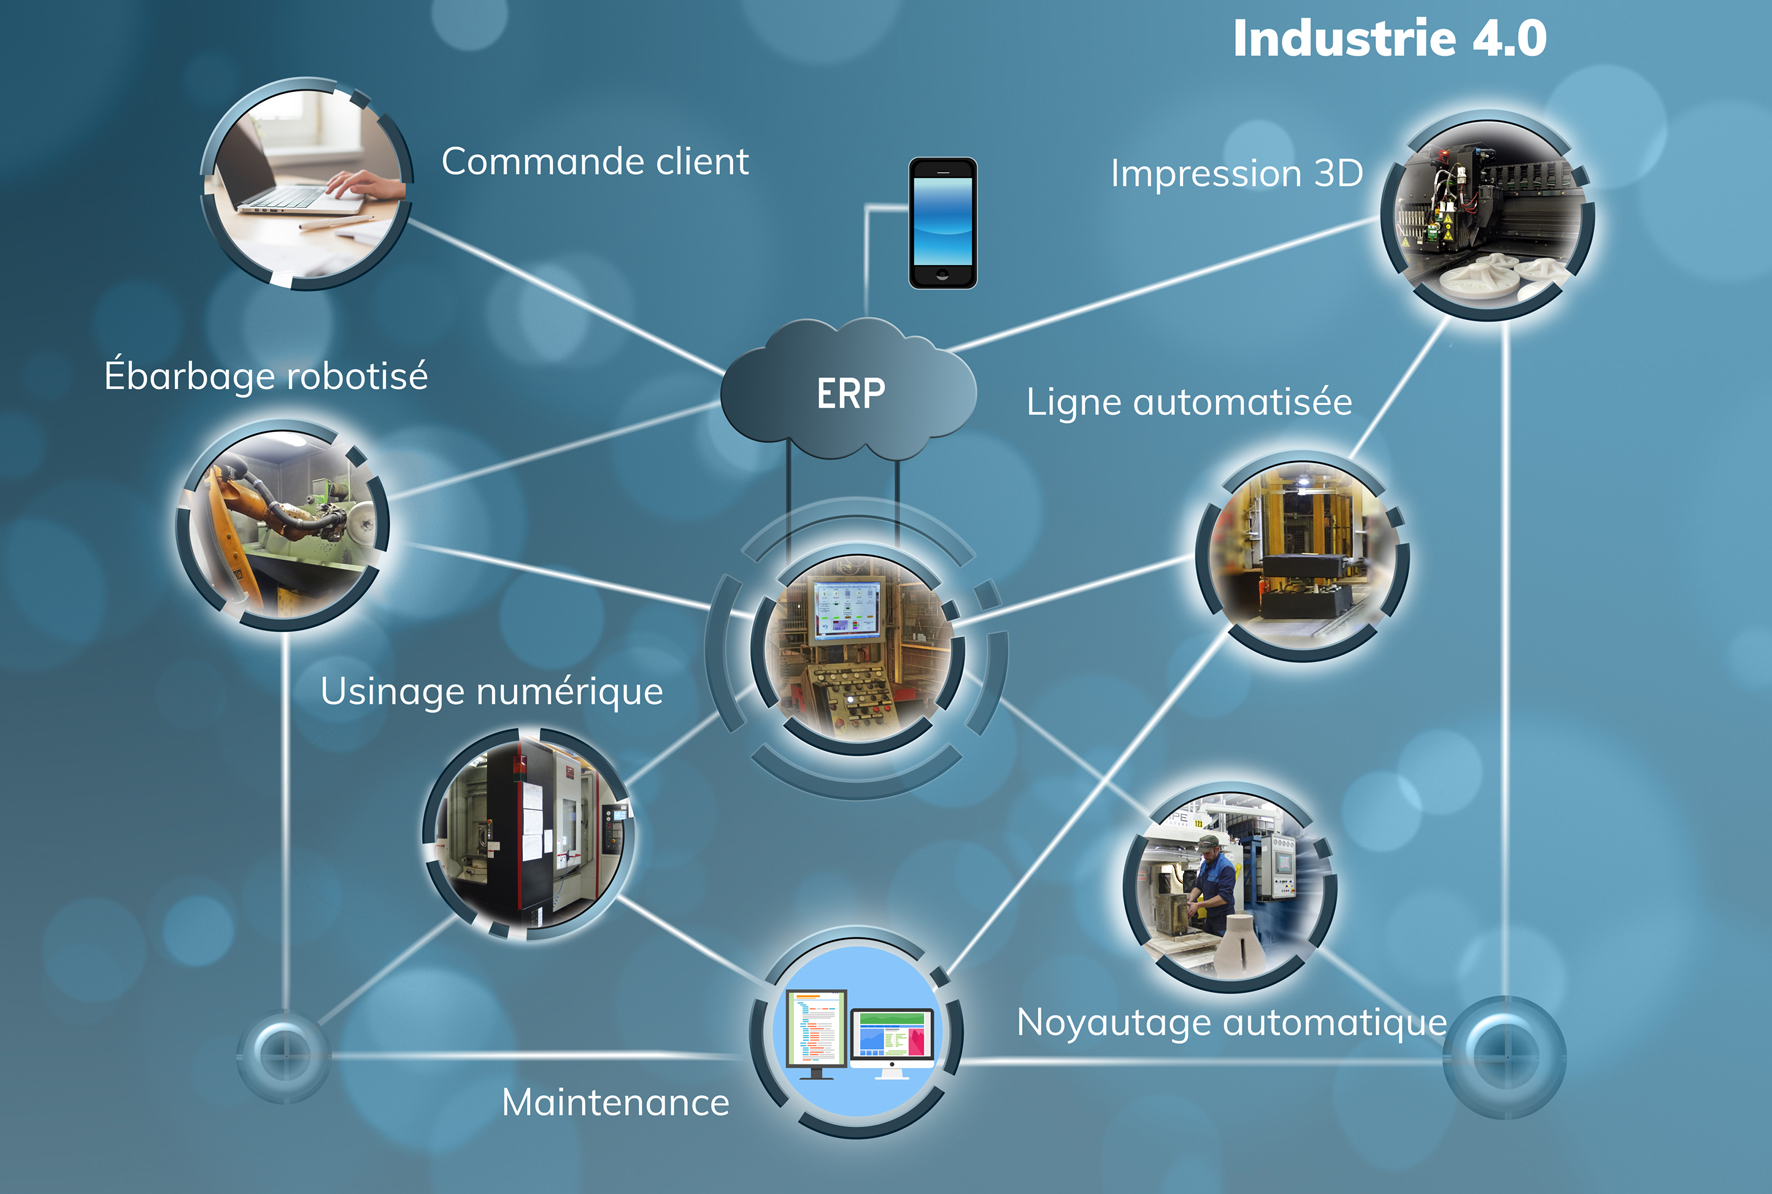 Industrie 4:0